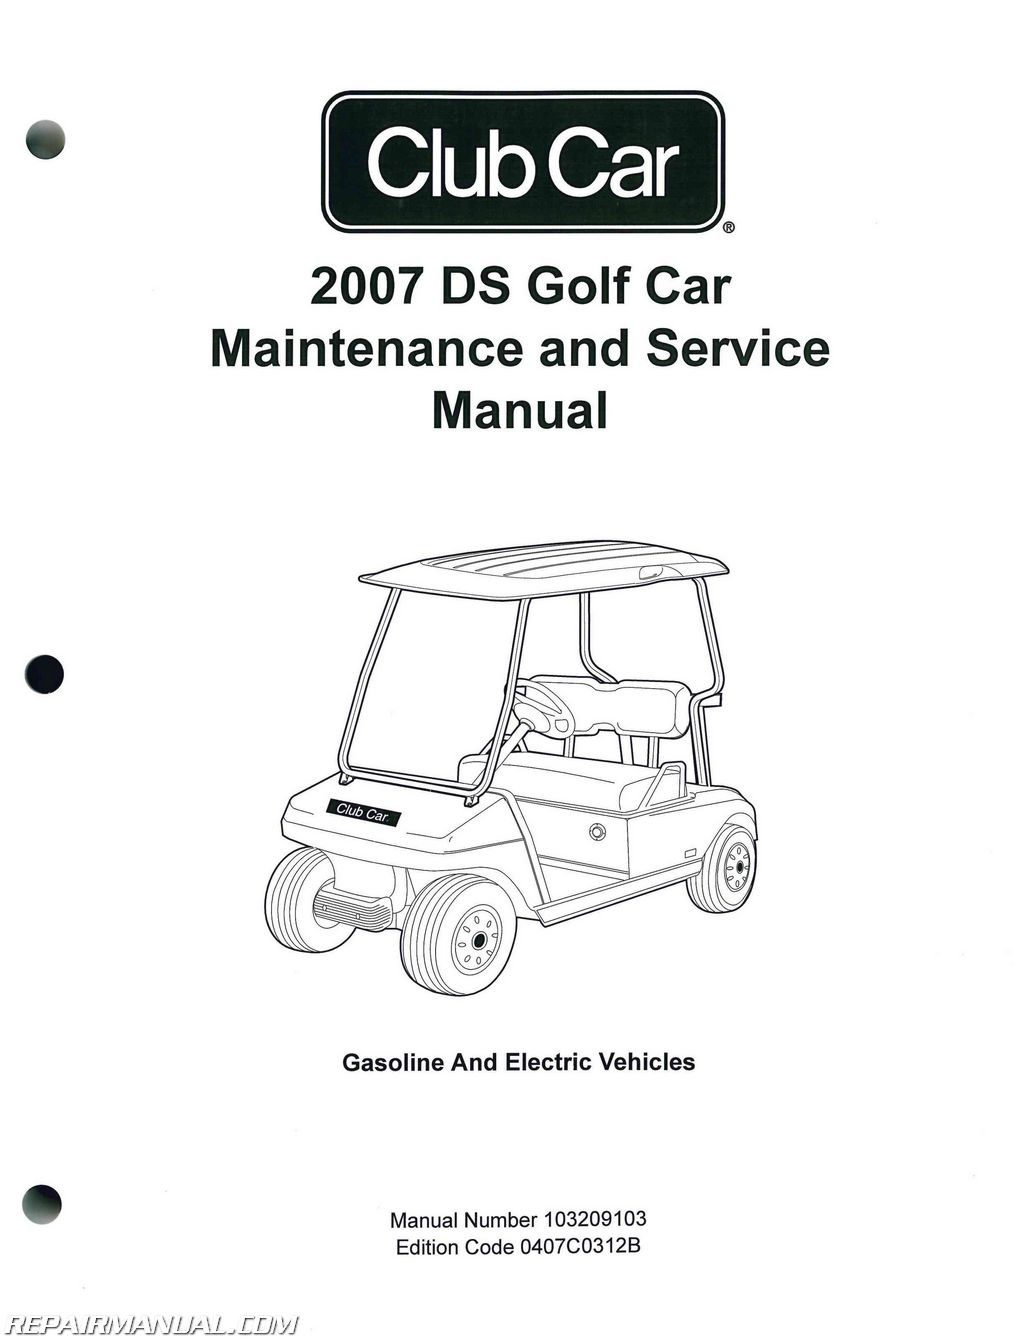 2007 Club Car DS Golf Car Gas And Electric Golf Cart Service Manual 1996 club car ds 48v wiring diagram circuit and schematics diagram power drive model 17930 wiring diagram at crackthecode.co